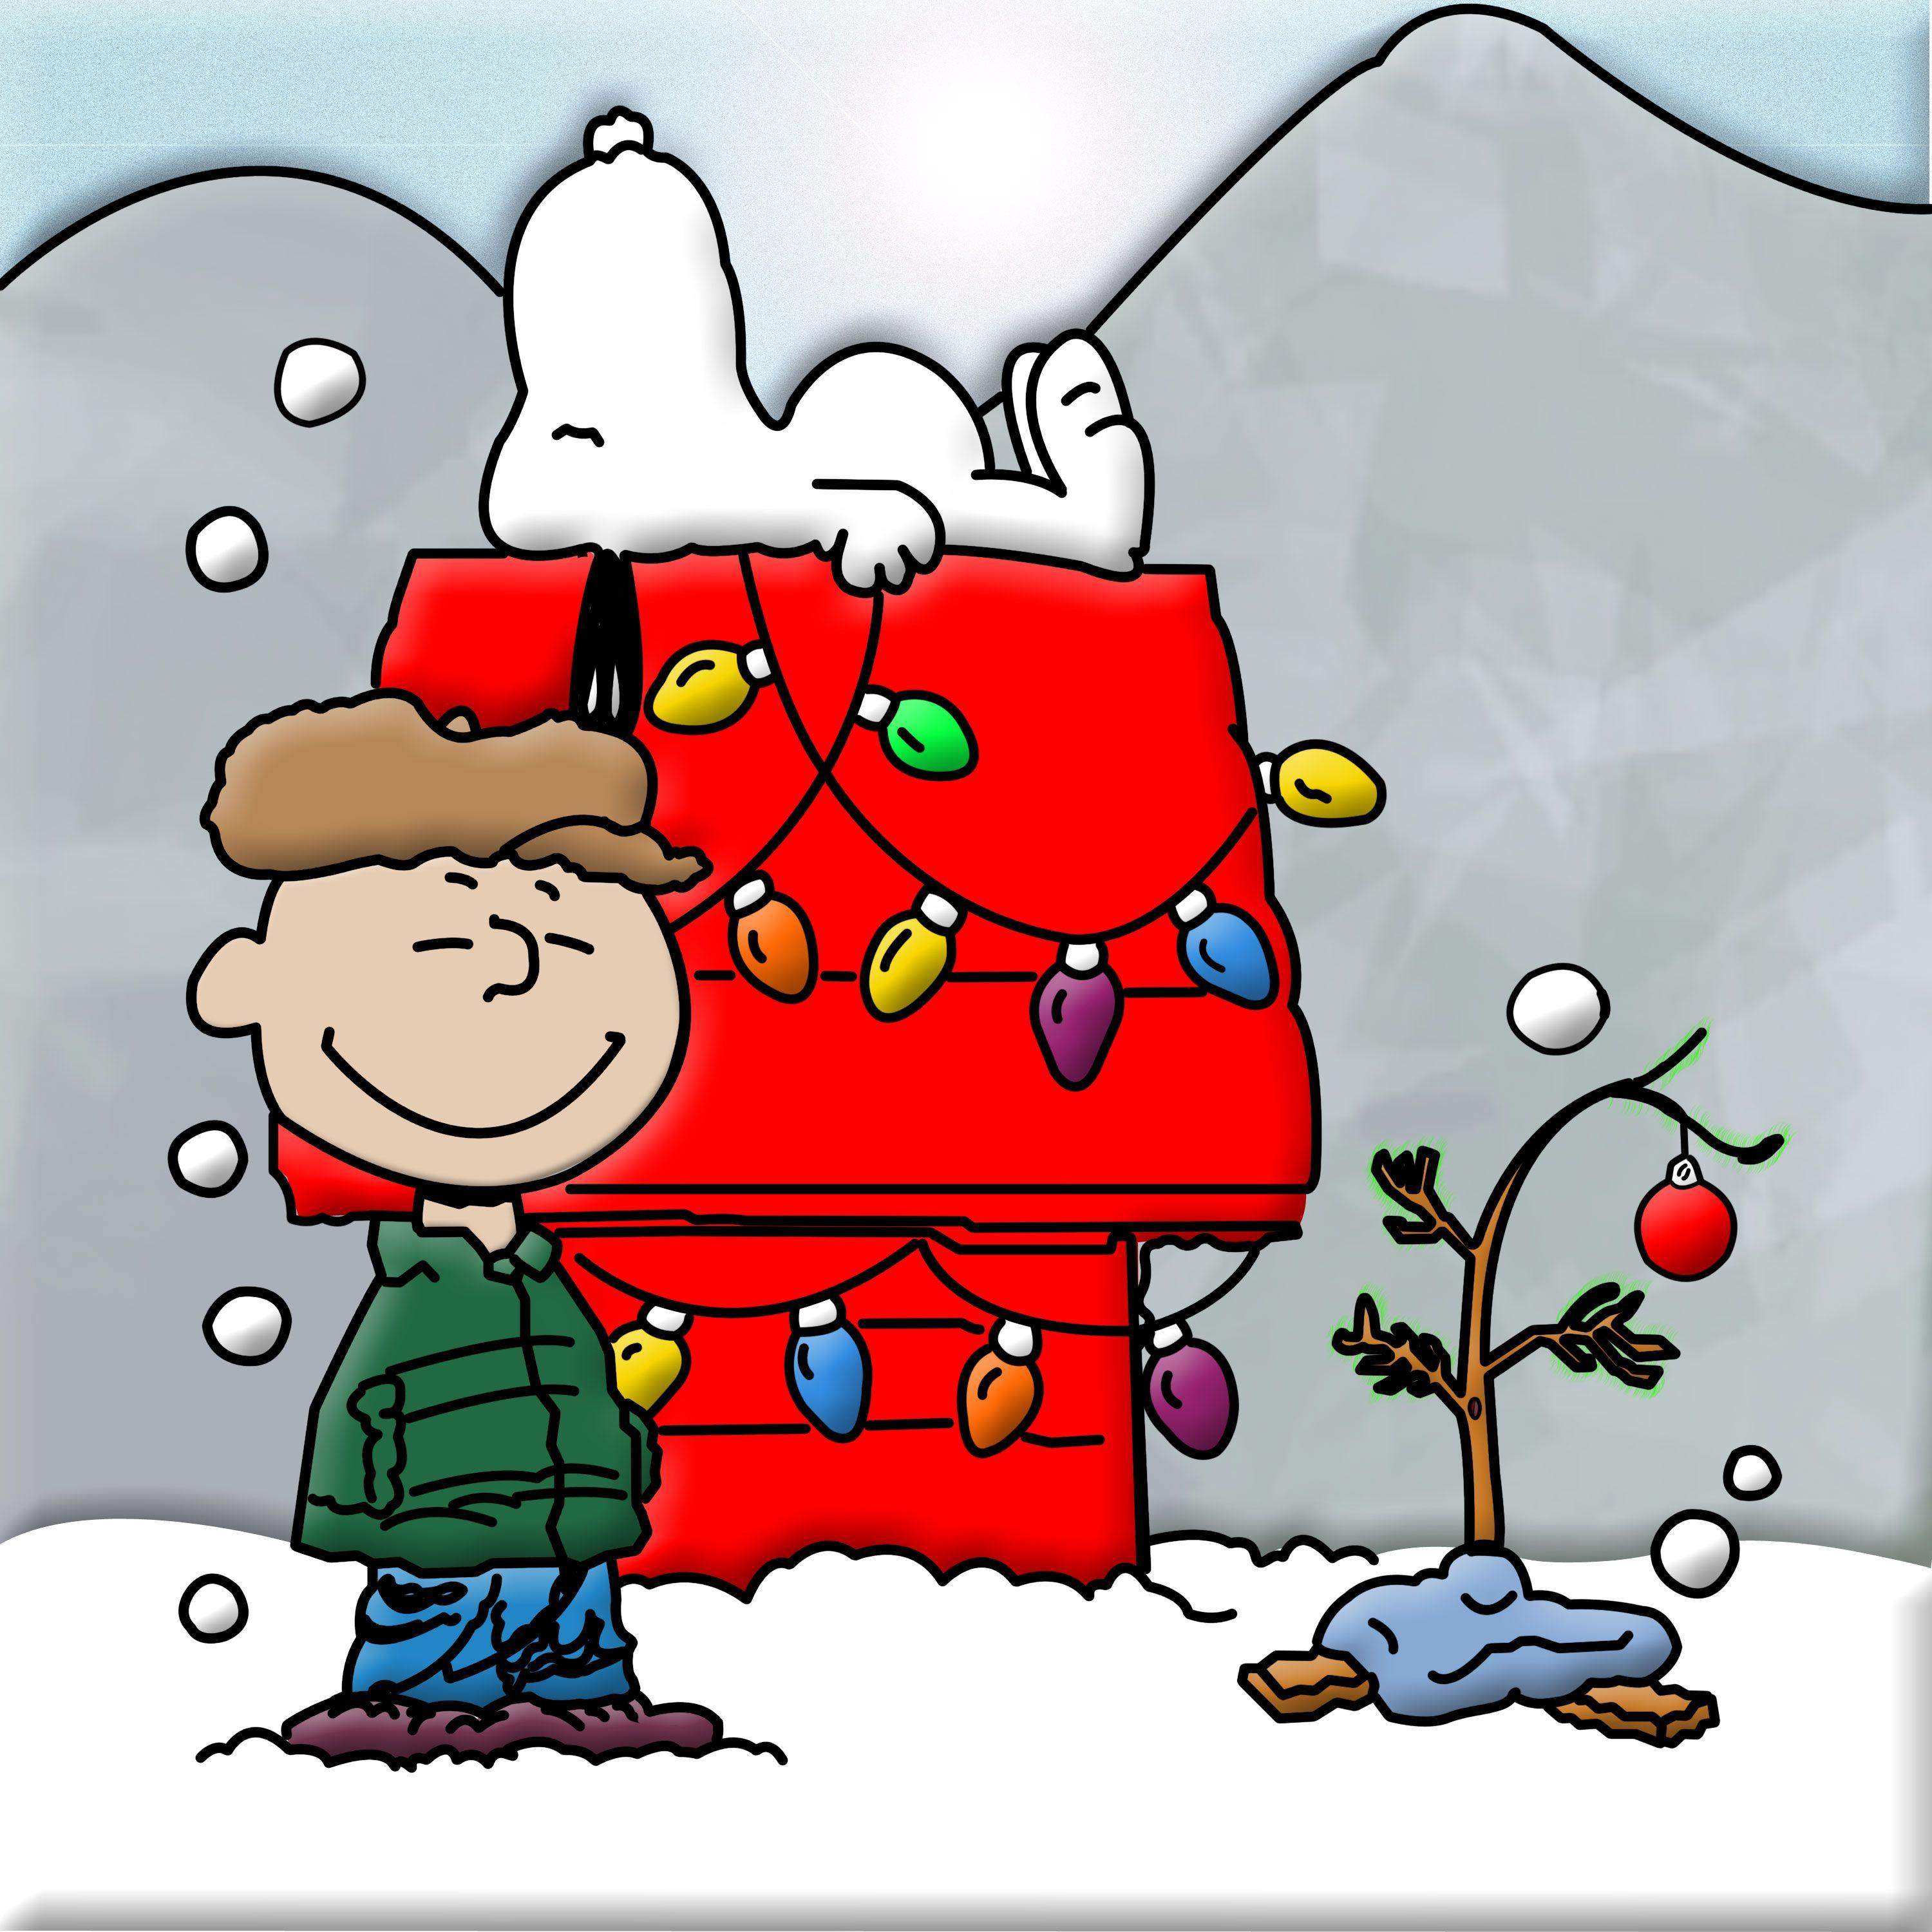 Charlie brown christmas tree wallpapers wallpaper cave - Charlie brown bilder ...